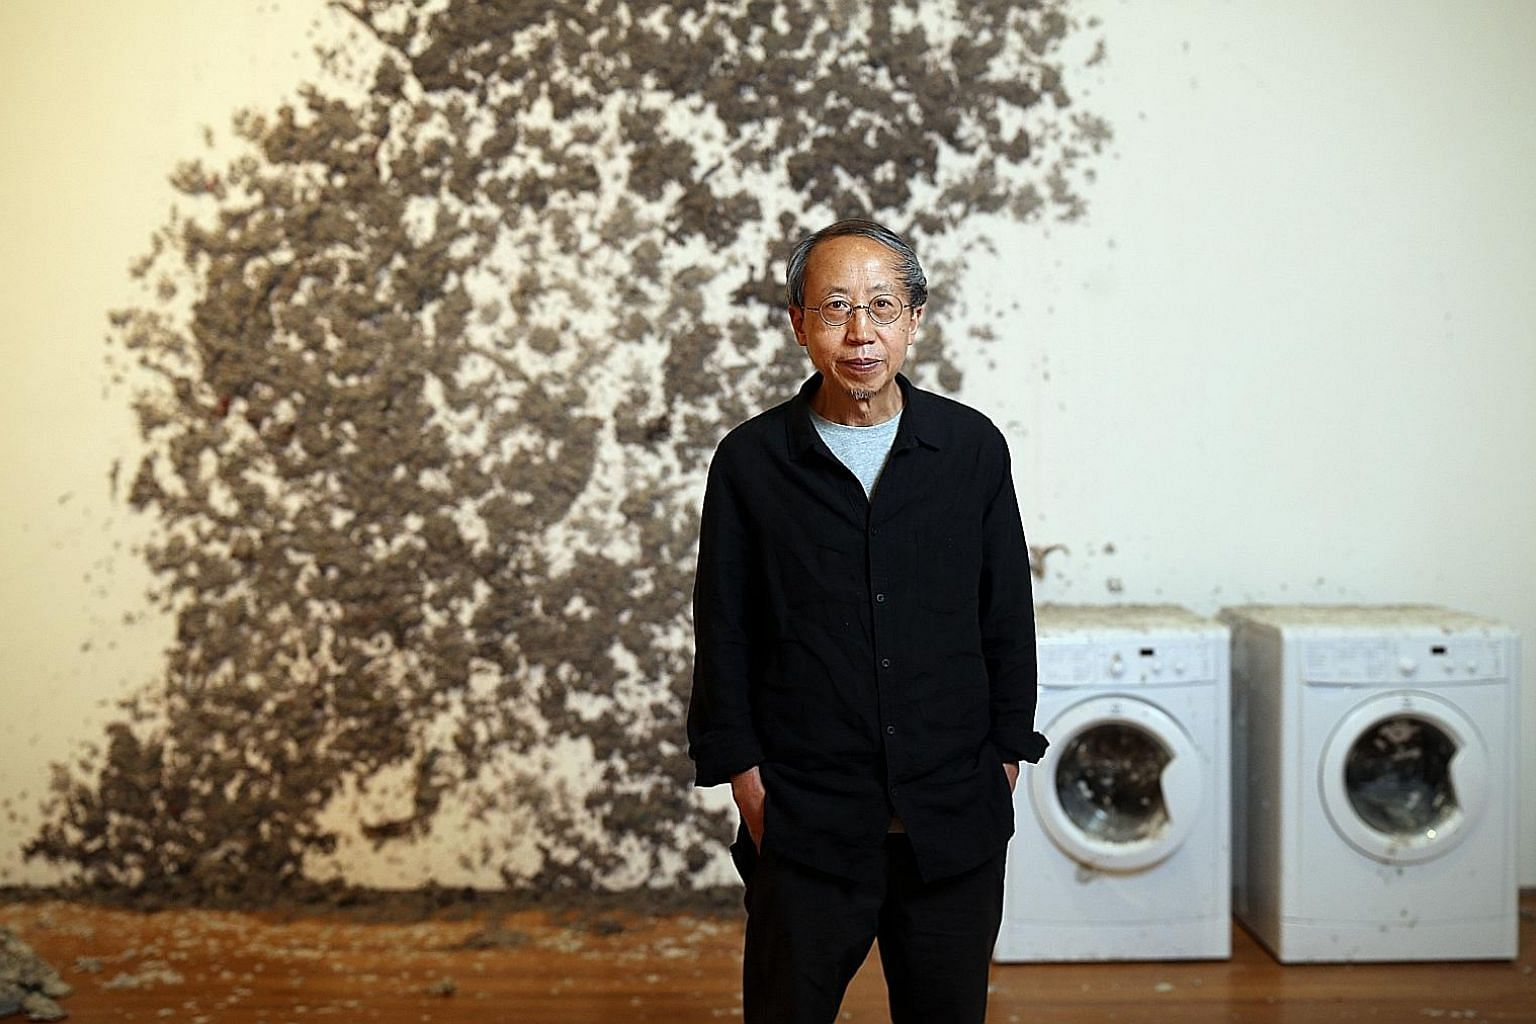 Artist Huang Yong Ping with his installation, Reptiles, which will be on display at Awakenings: Art In Society In Asia 1960s-1990s.